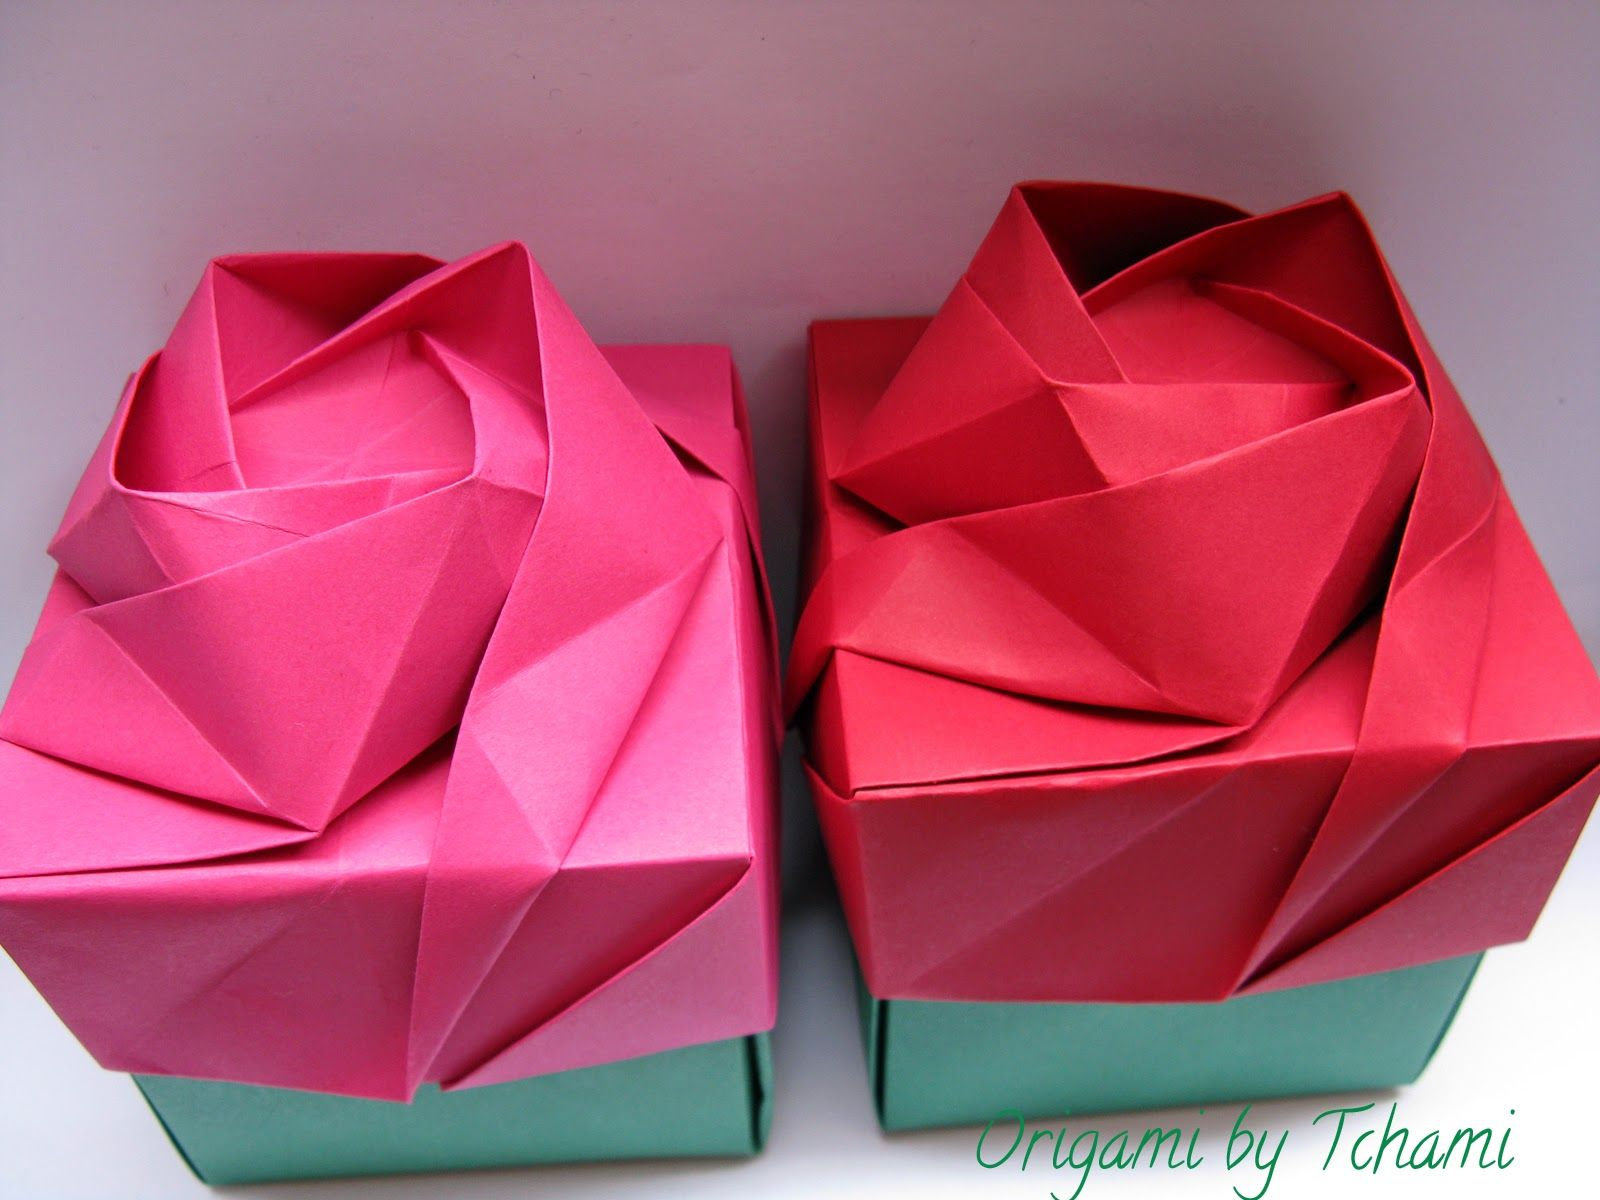 Rose box tutorial. Seems difficult but worth giving a try ... - photo#24